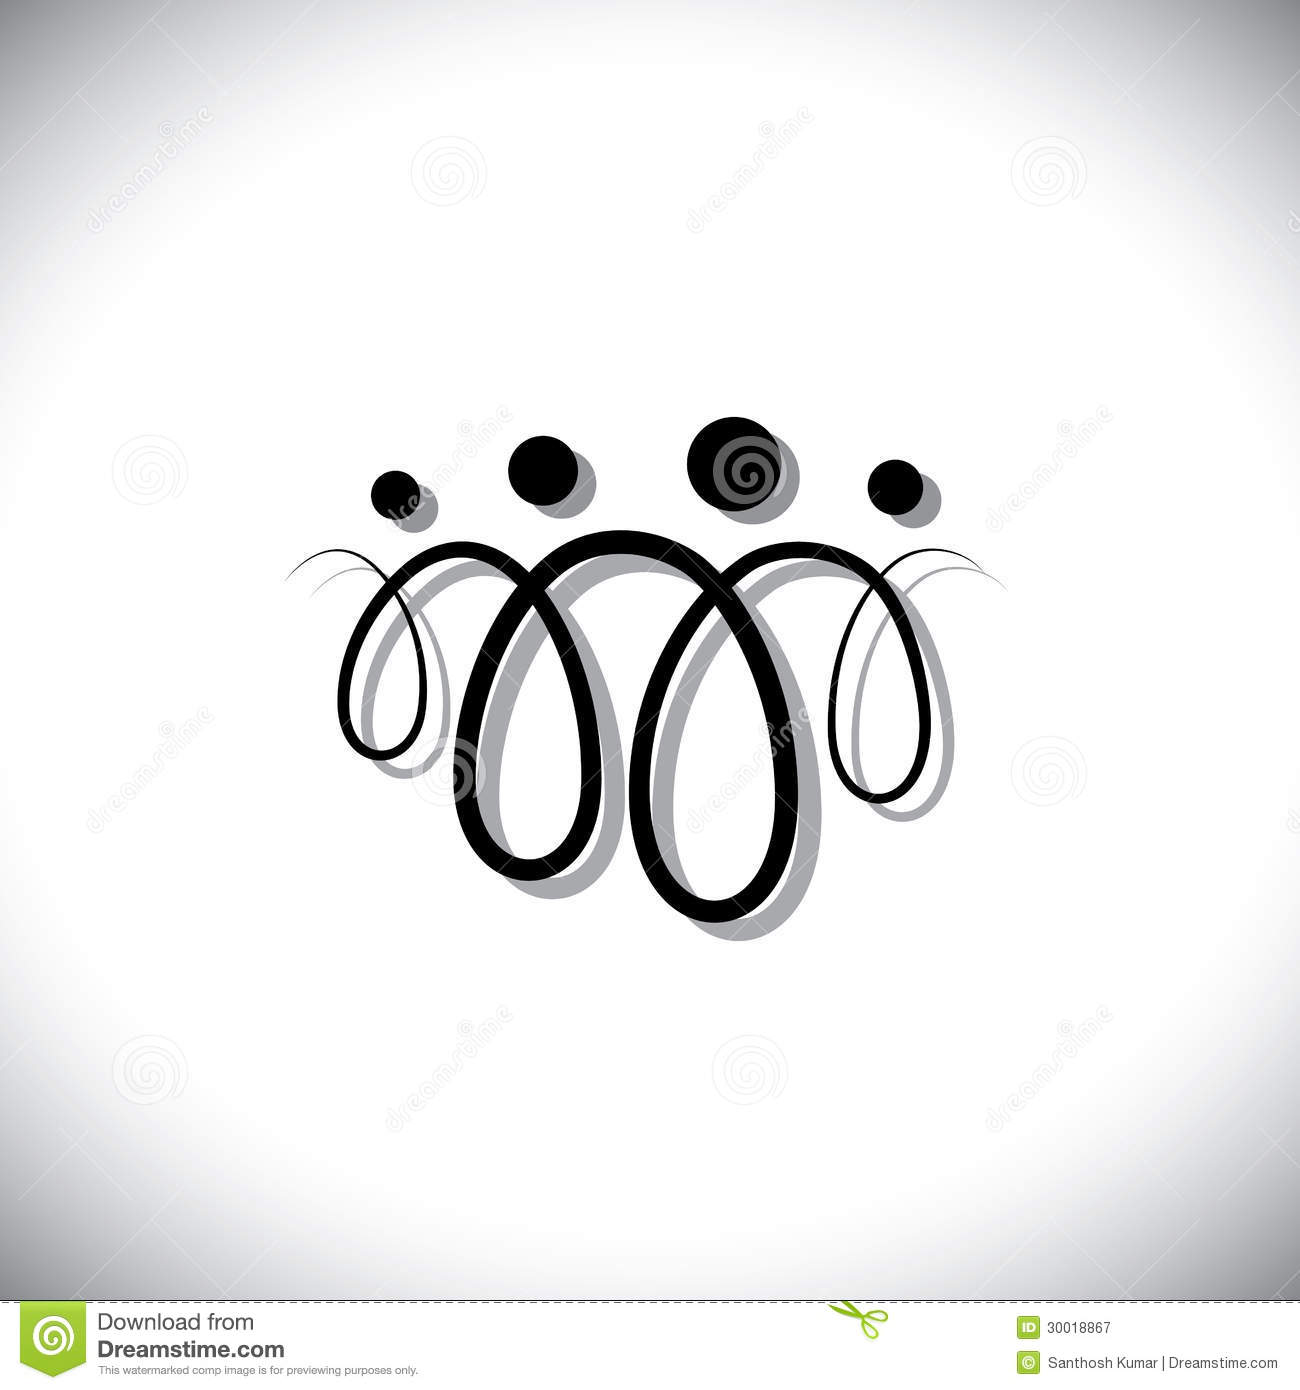 Family Of Four People Abstract Symbolsicons Using Line Loops Stock